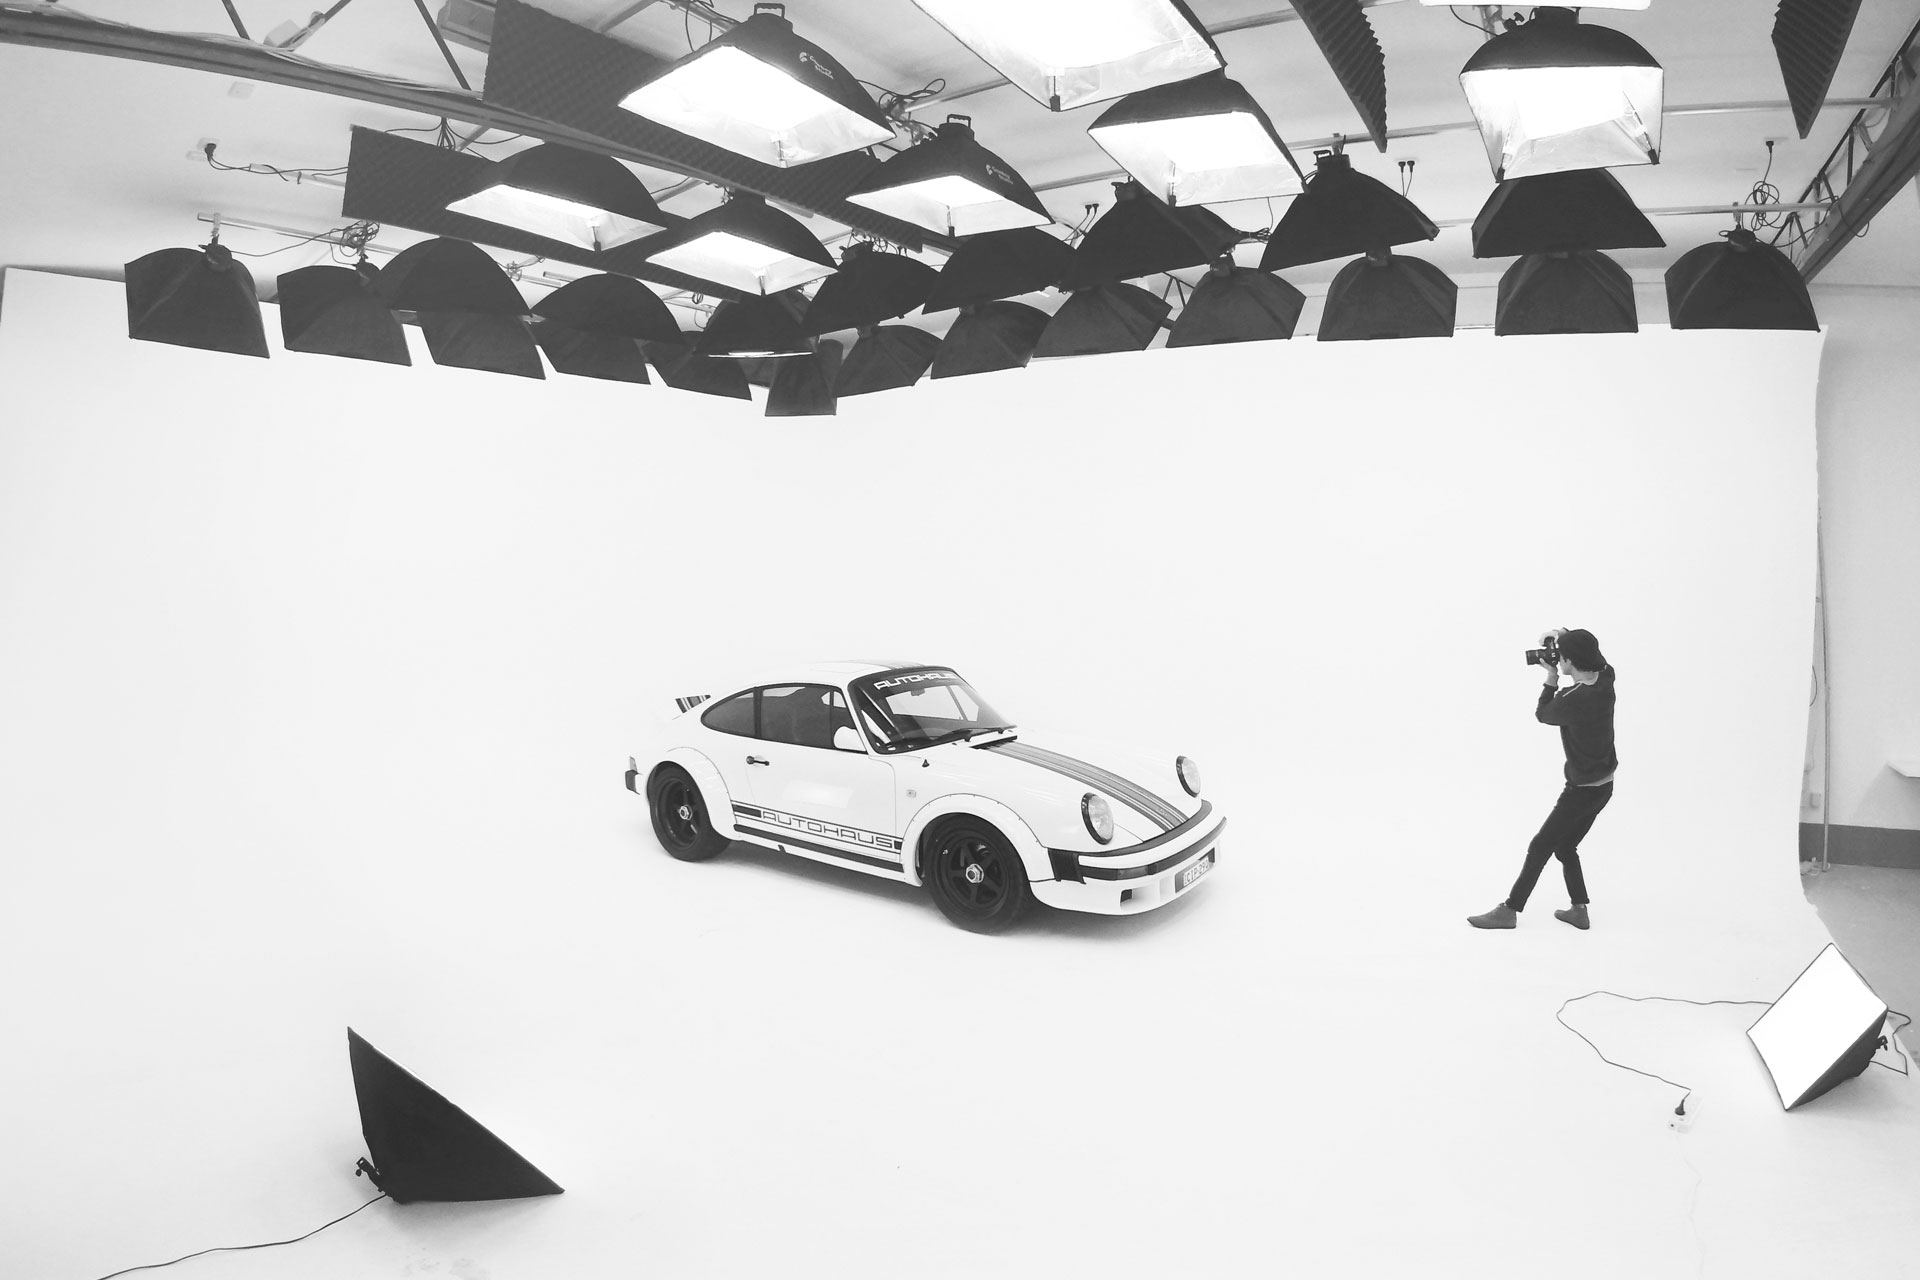 AUTOHUAS Porshe in the studio being photographed by our in-house photographer Curtis Redden.